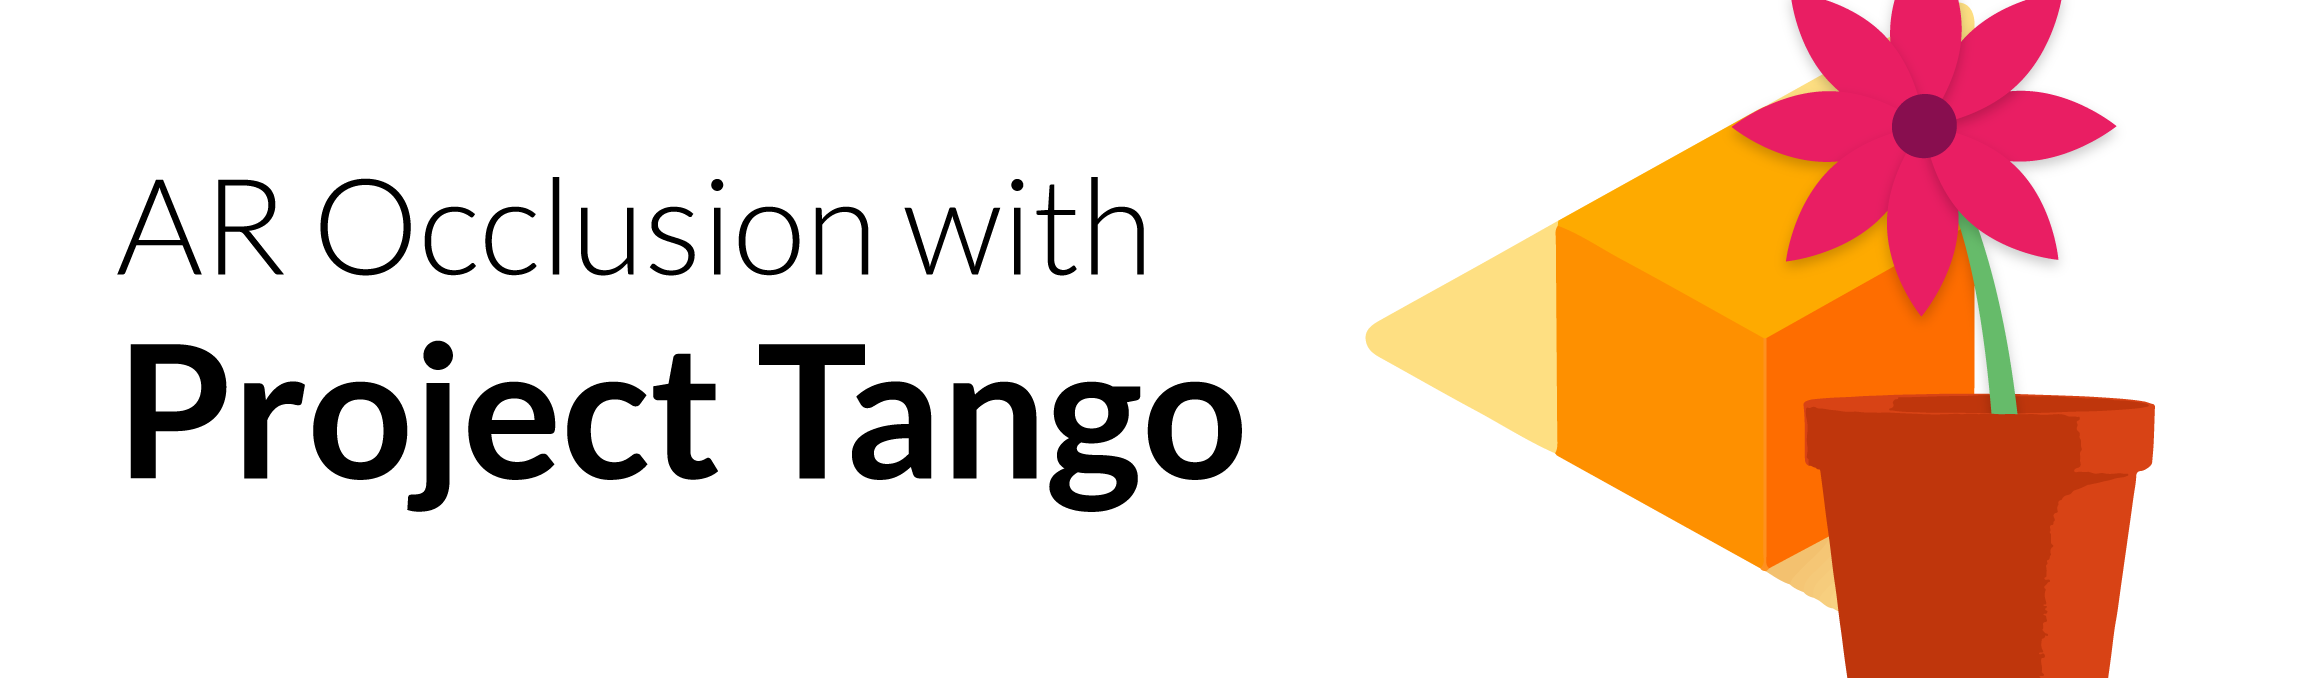 Augmented Reality Occlusion with Project Tango